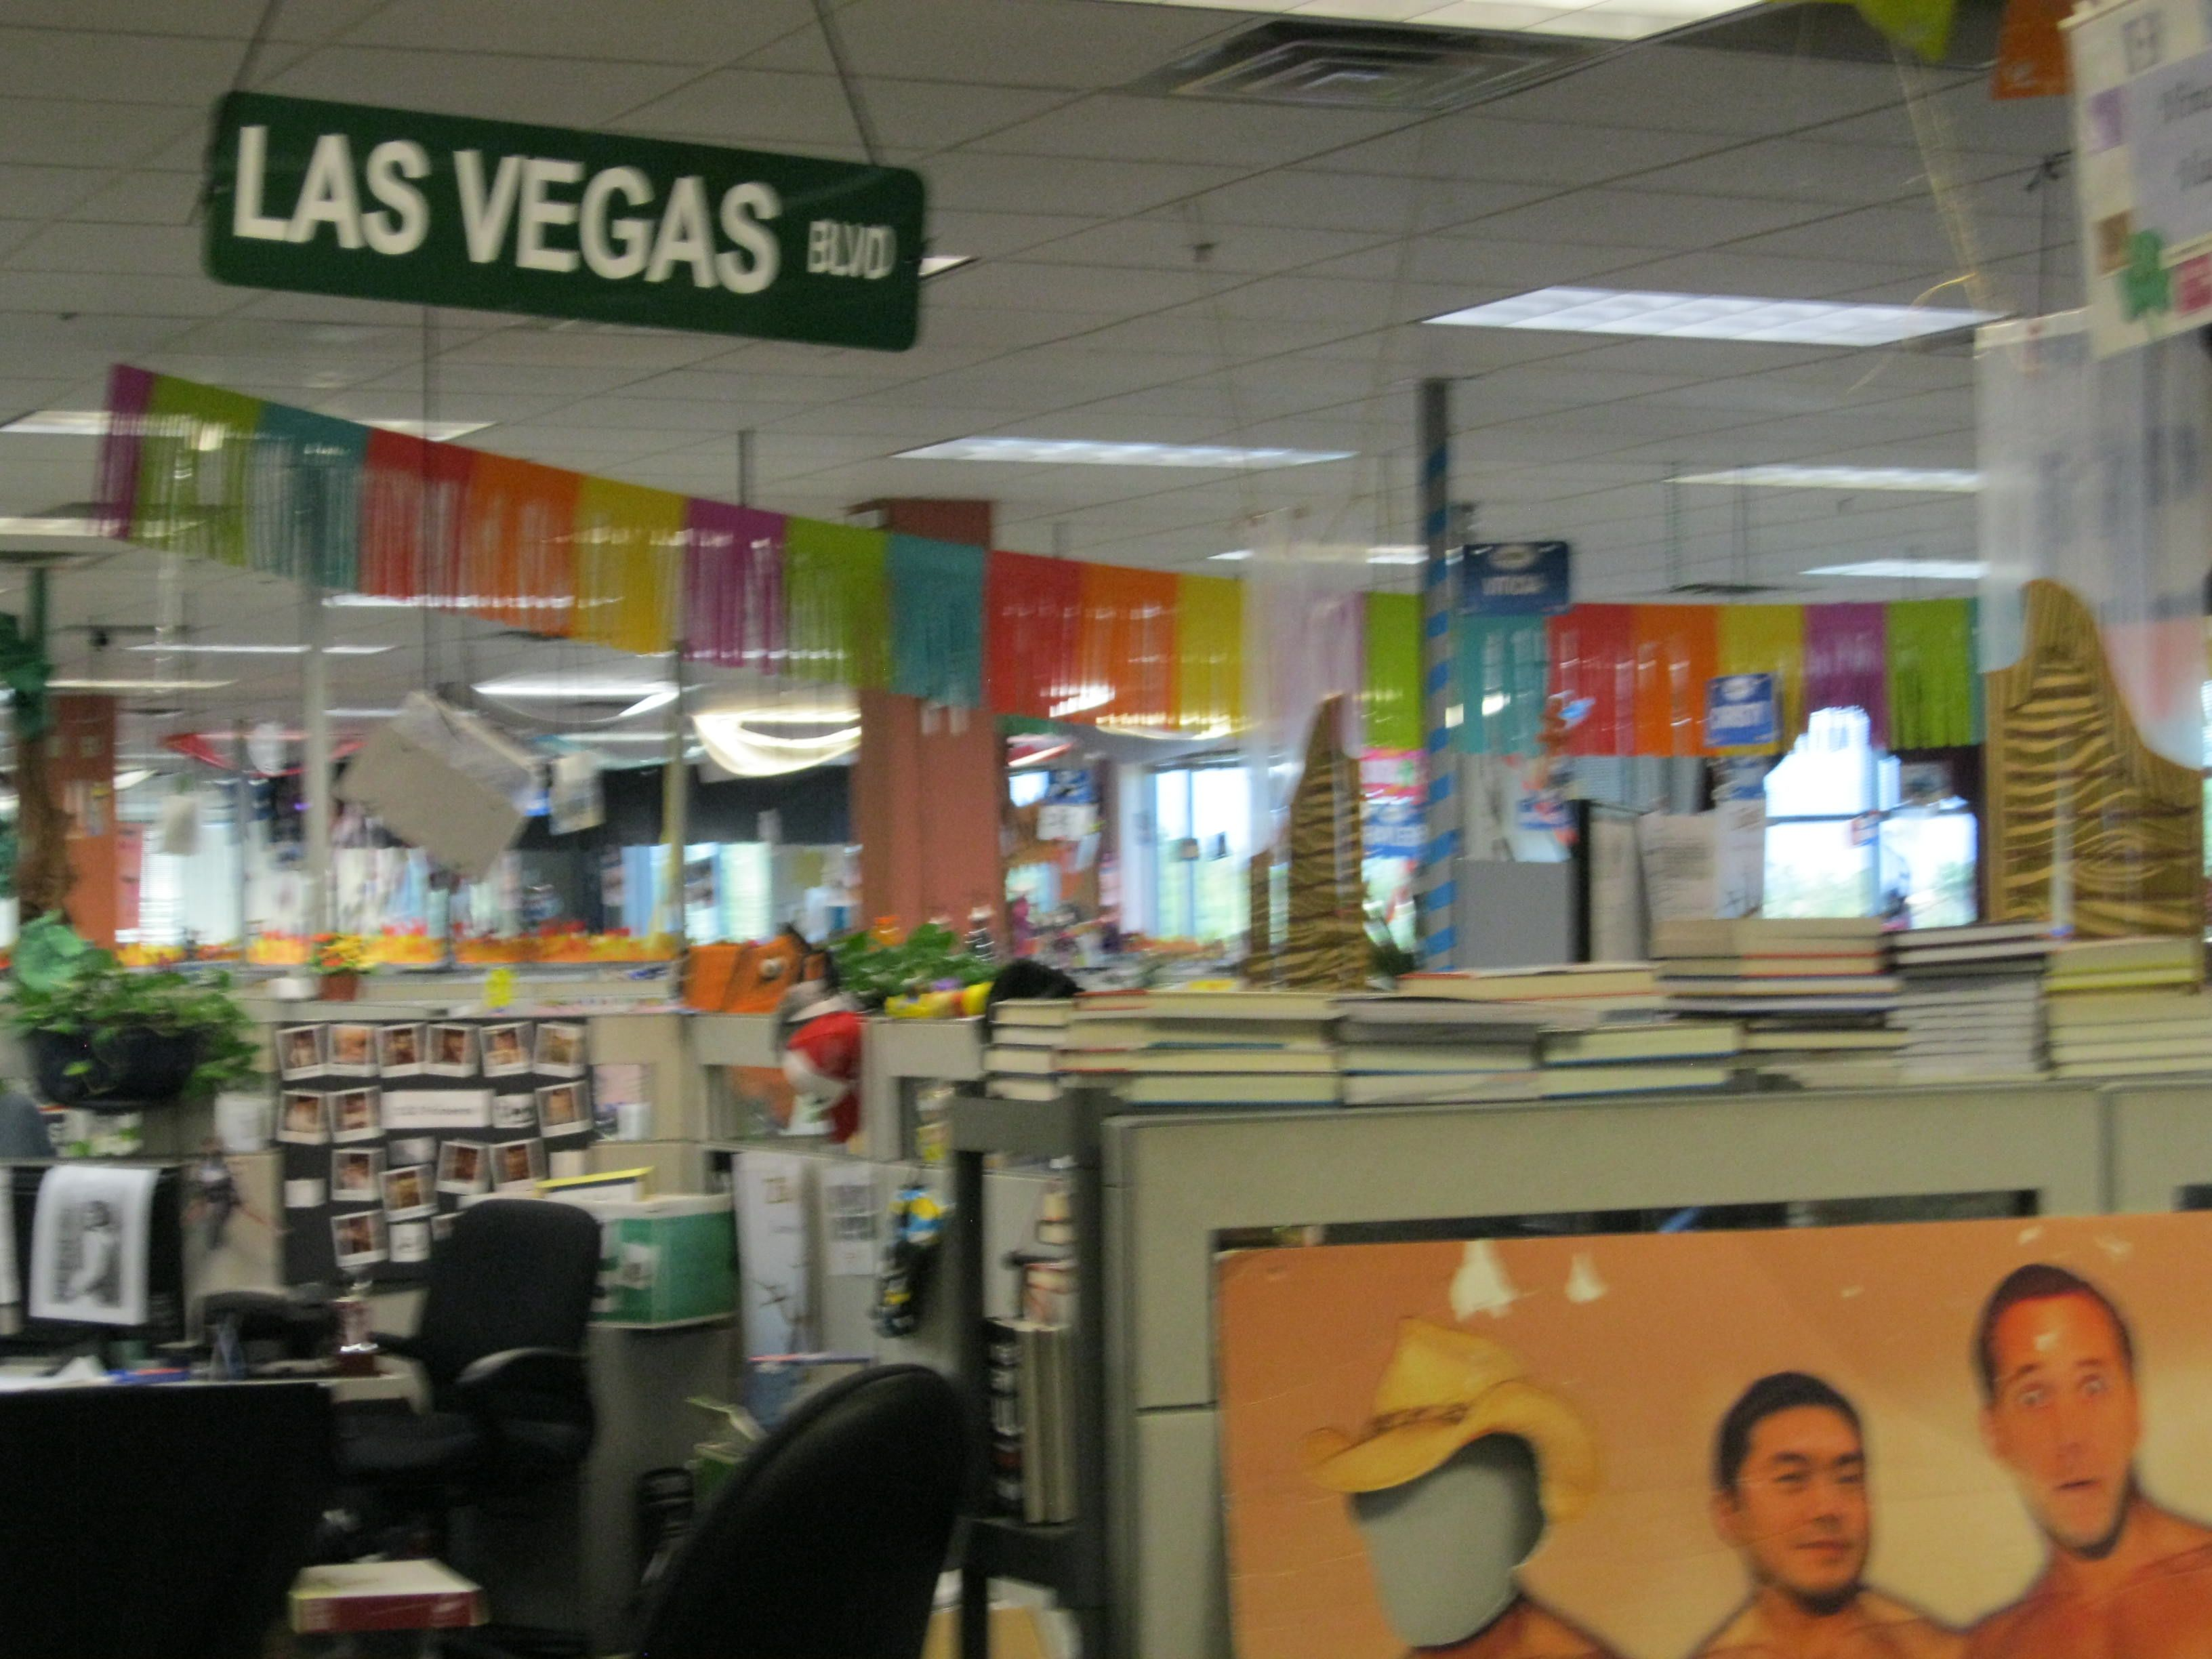 What I Learned During My Visit to Zappos